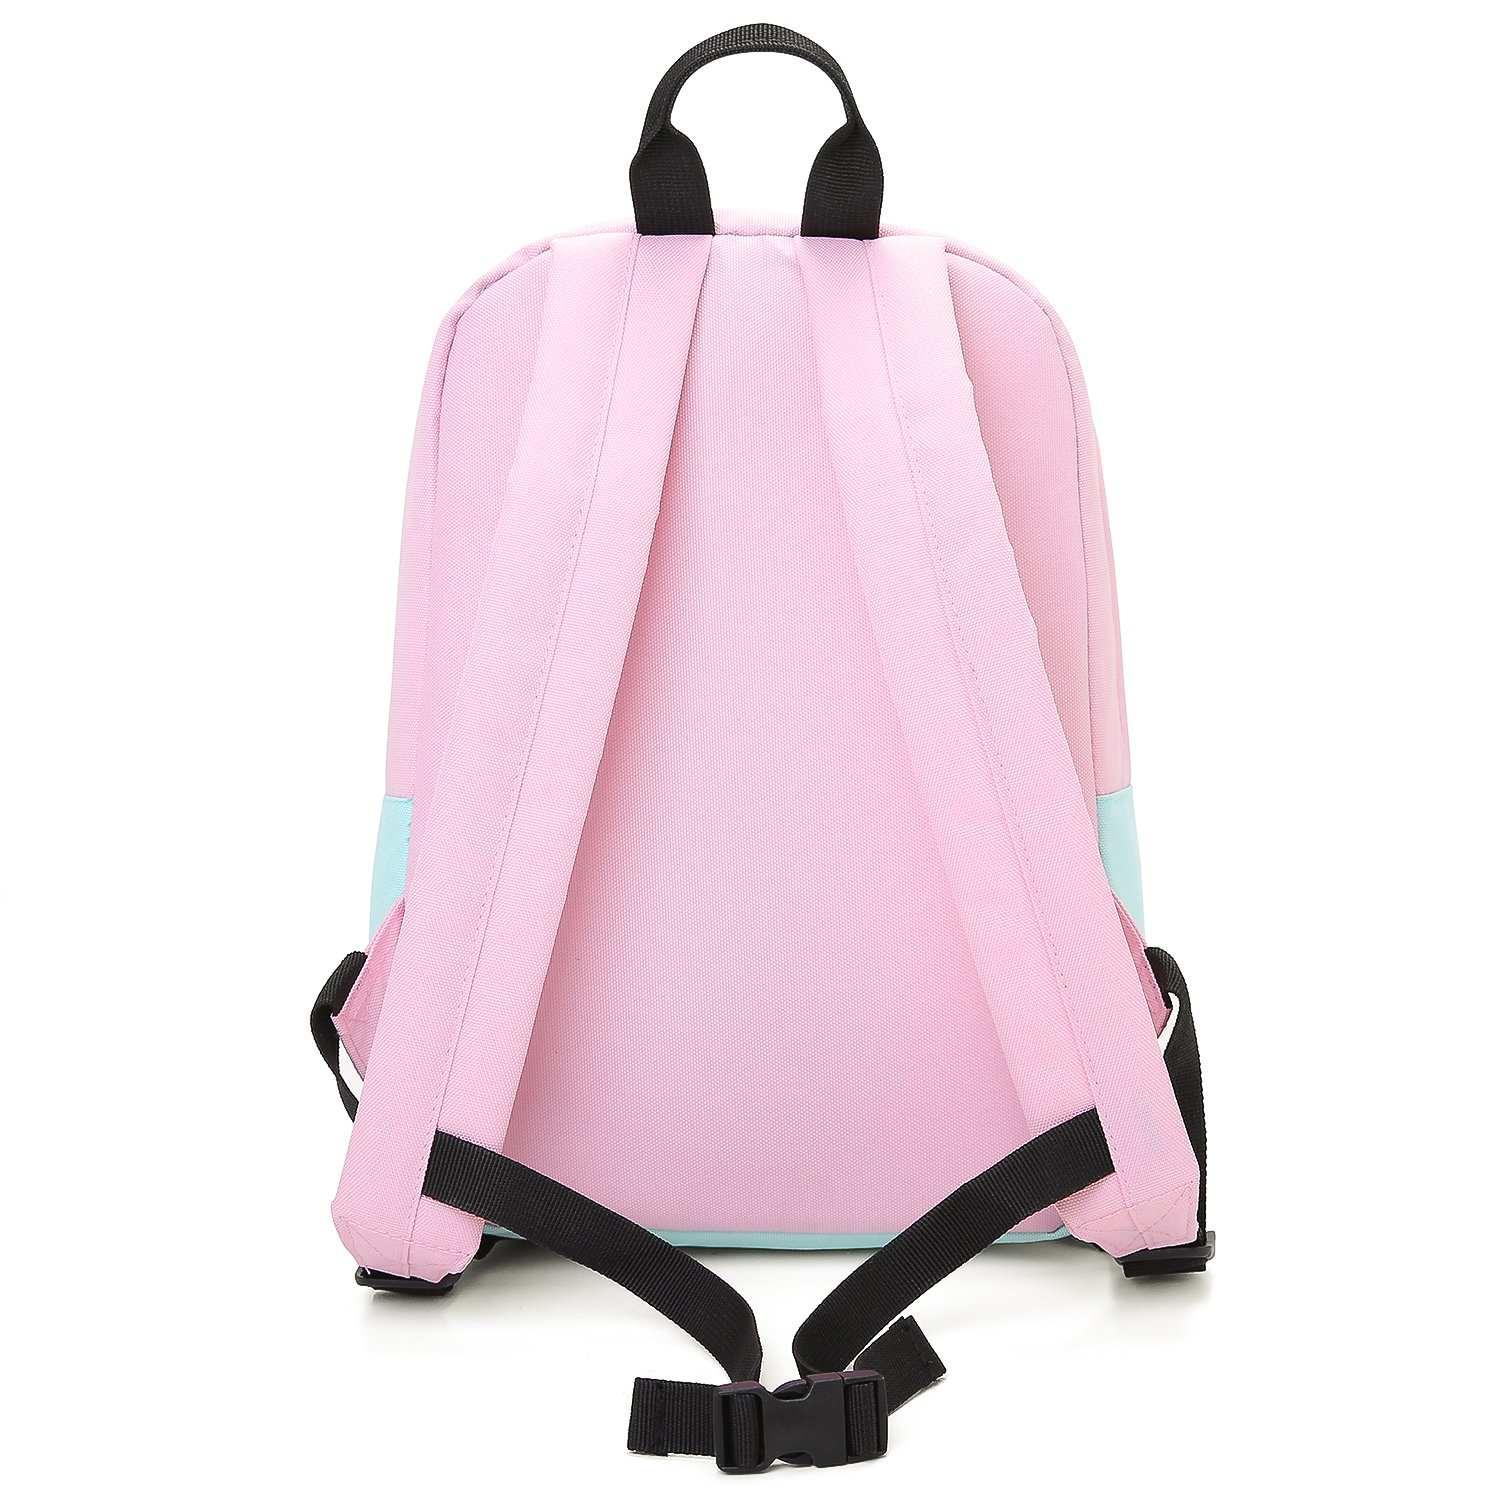 43d56e6da9 Amazon.com  mommore Kids Backpack for School Lunch Bag with Chest Clip Best  for 3-6 Years Old (Pink and Blue)  Toys   Games